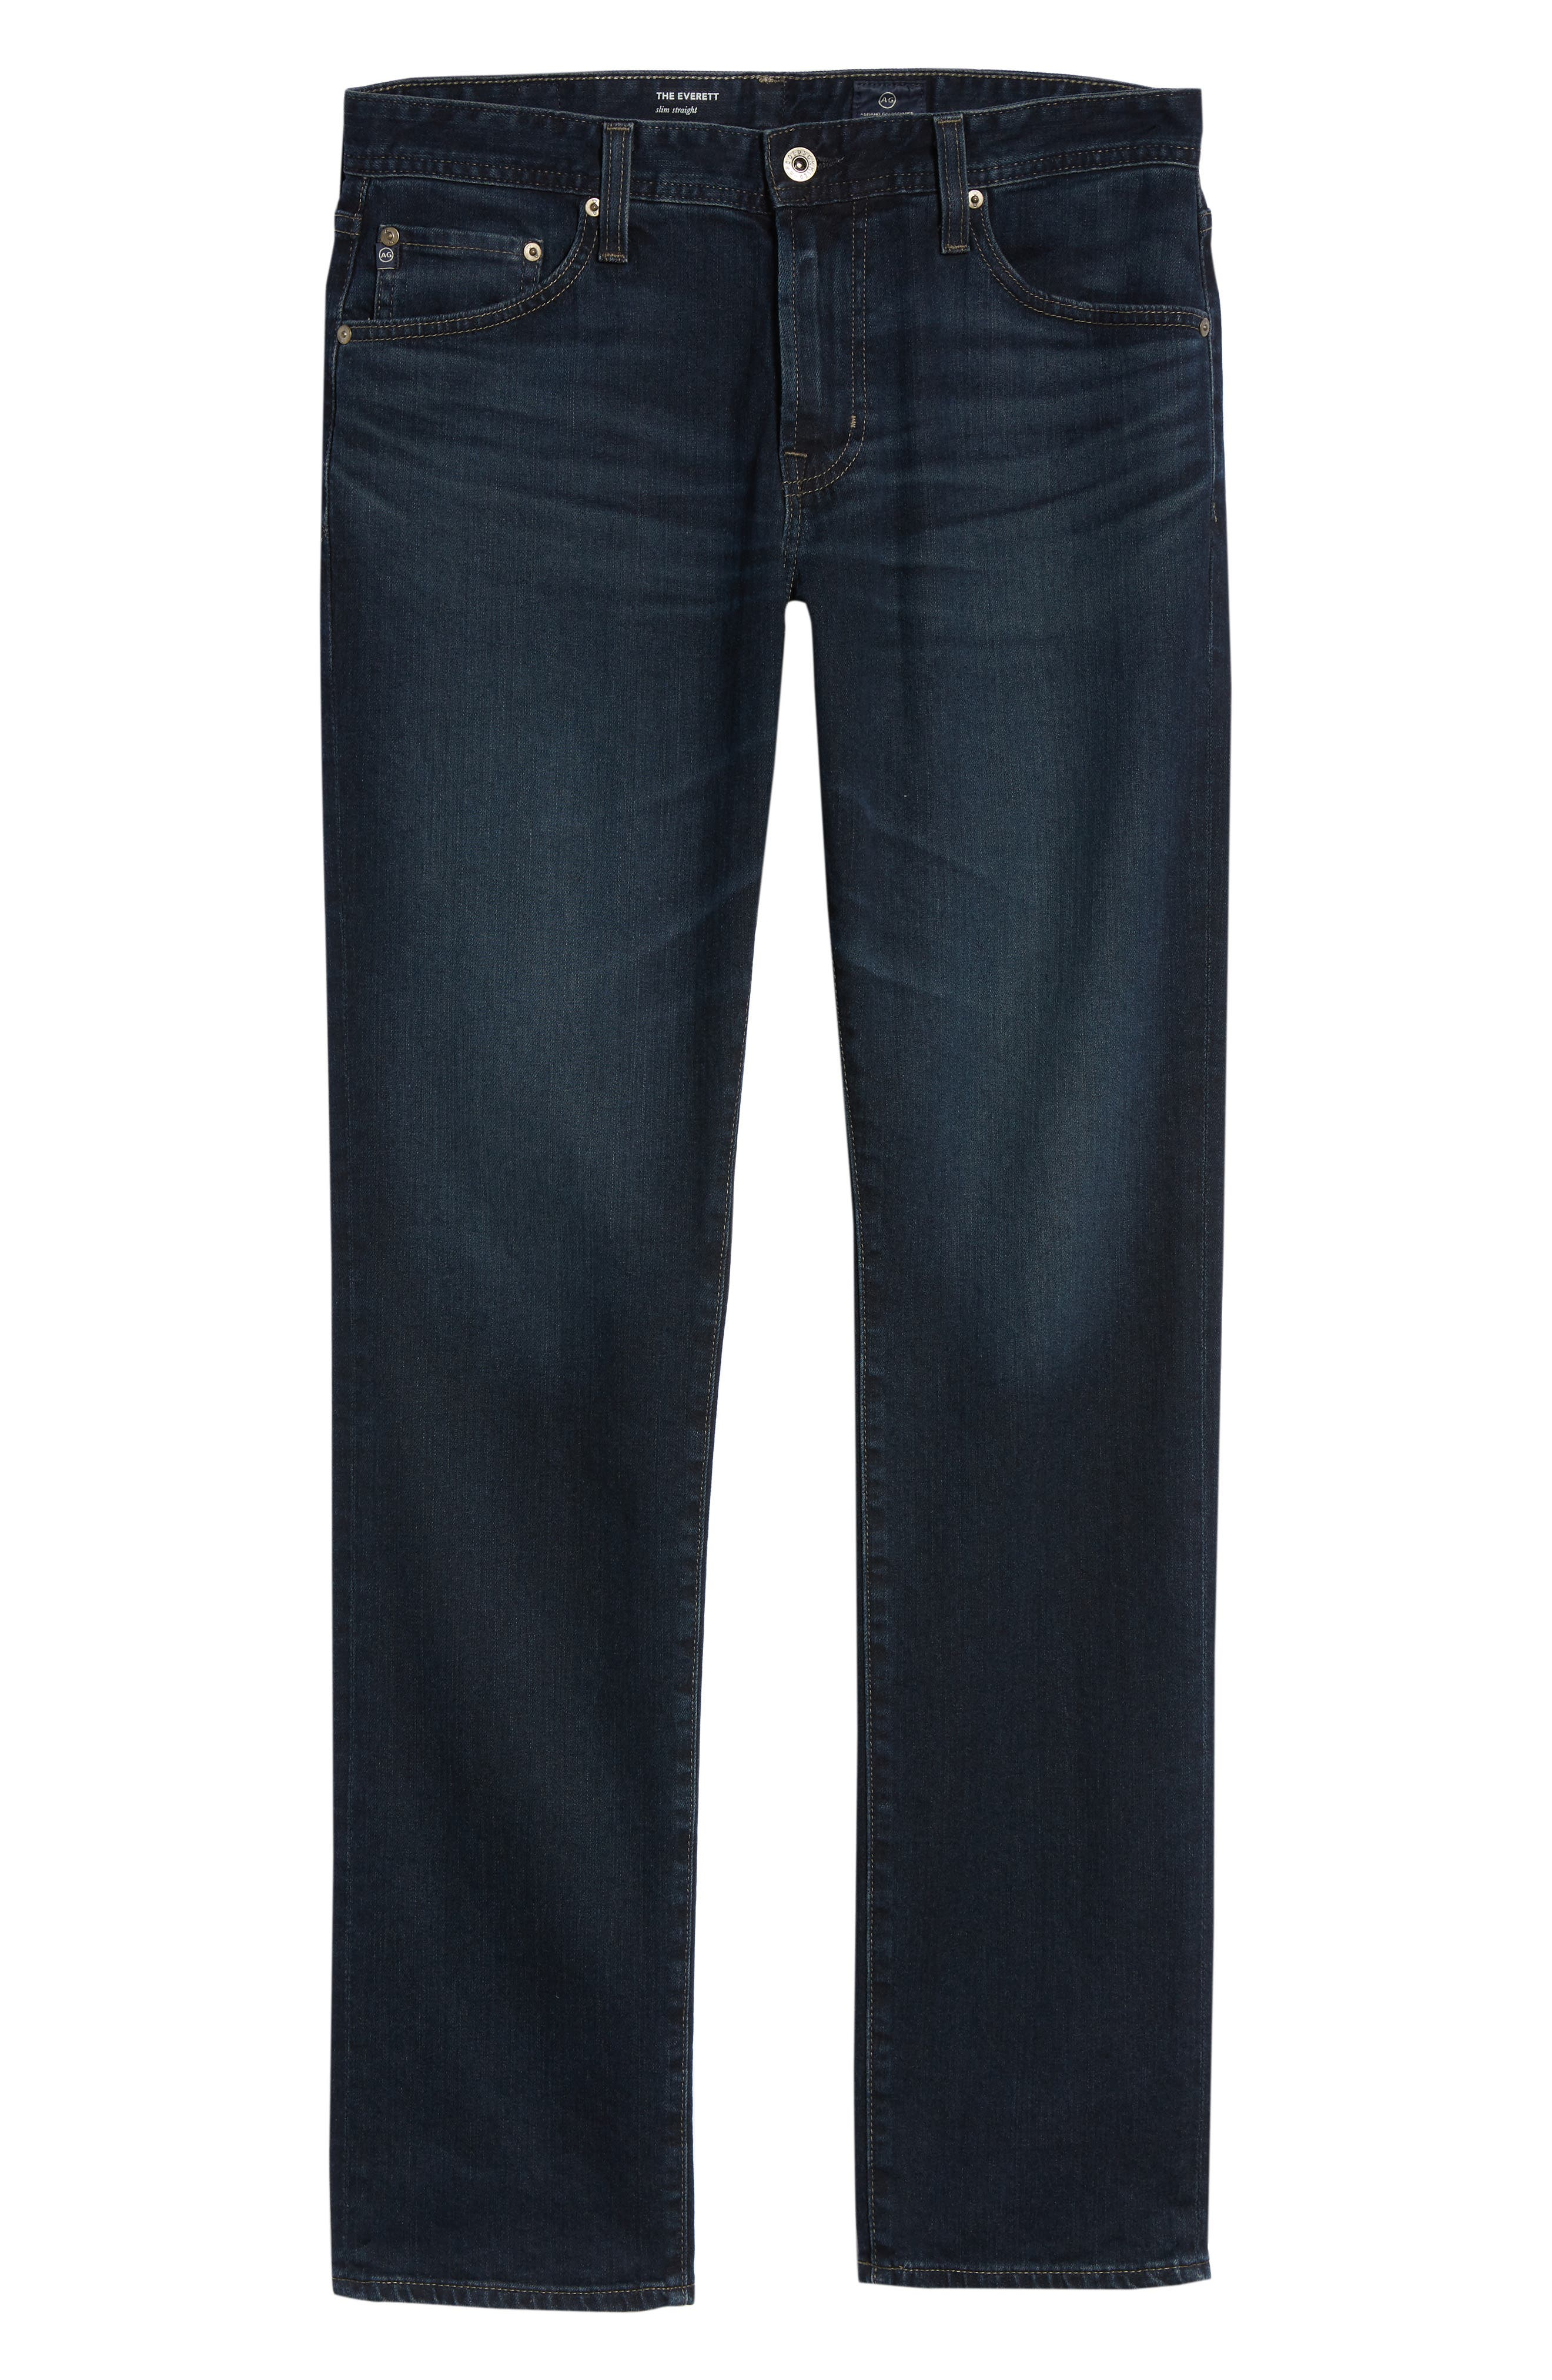 Everett Slim Straight Fit Jeans,                             Alternate thumbnail 6, color,                             SHADOW MOUNTAIN